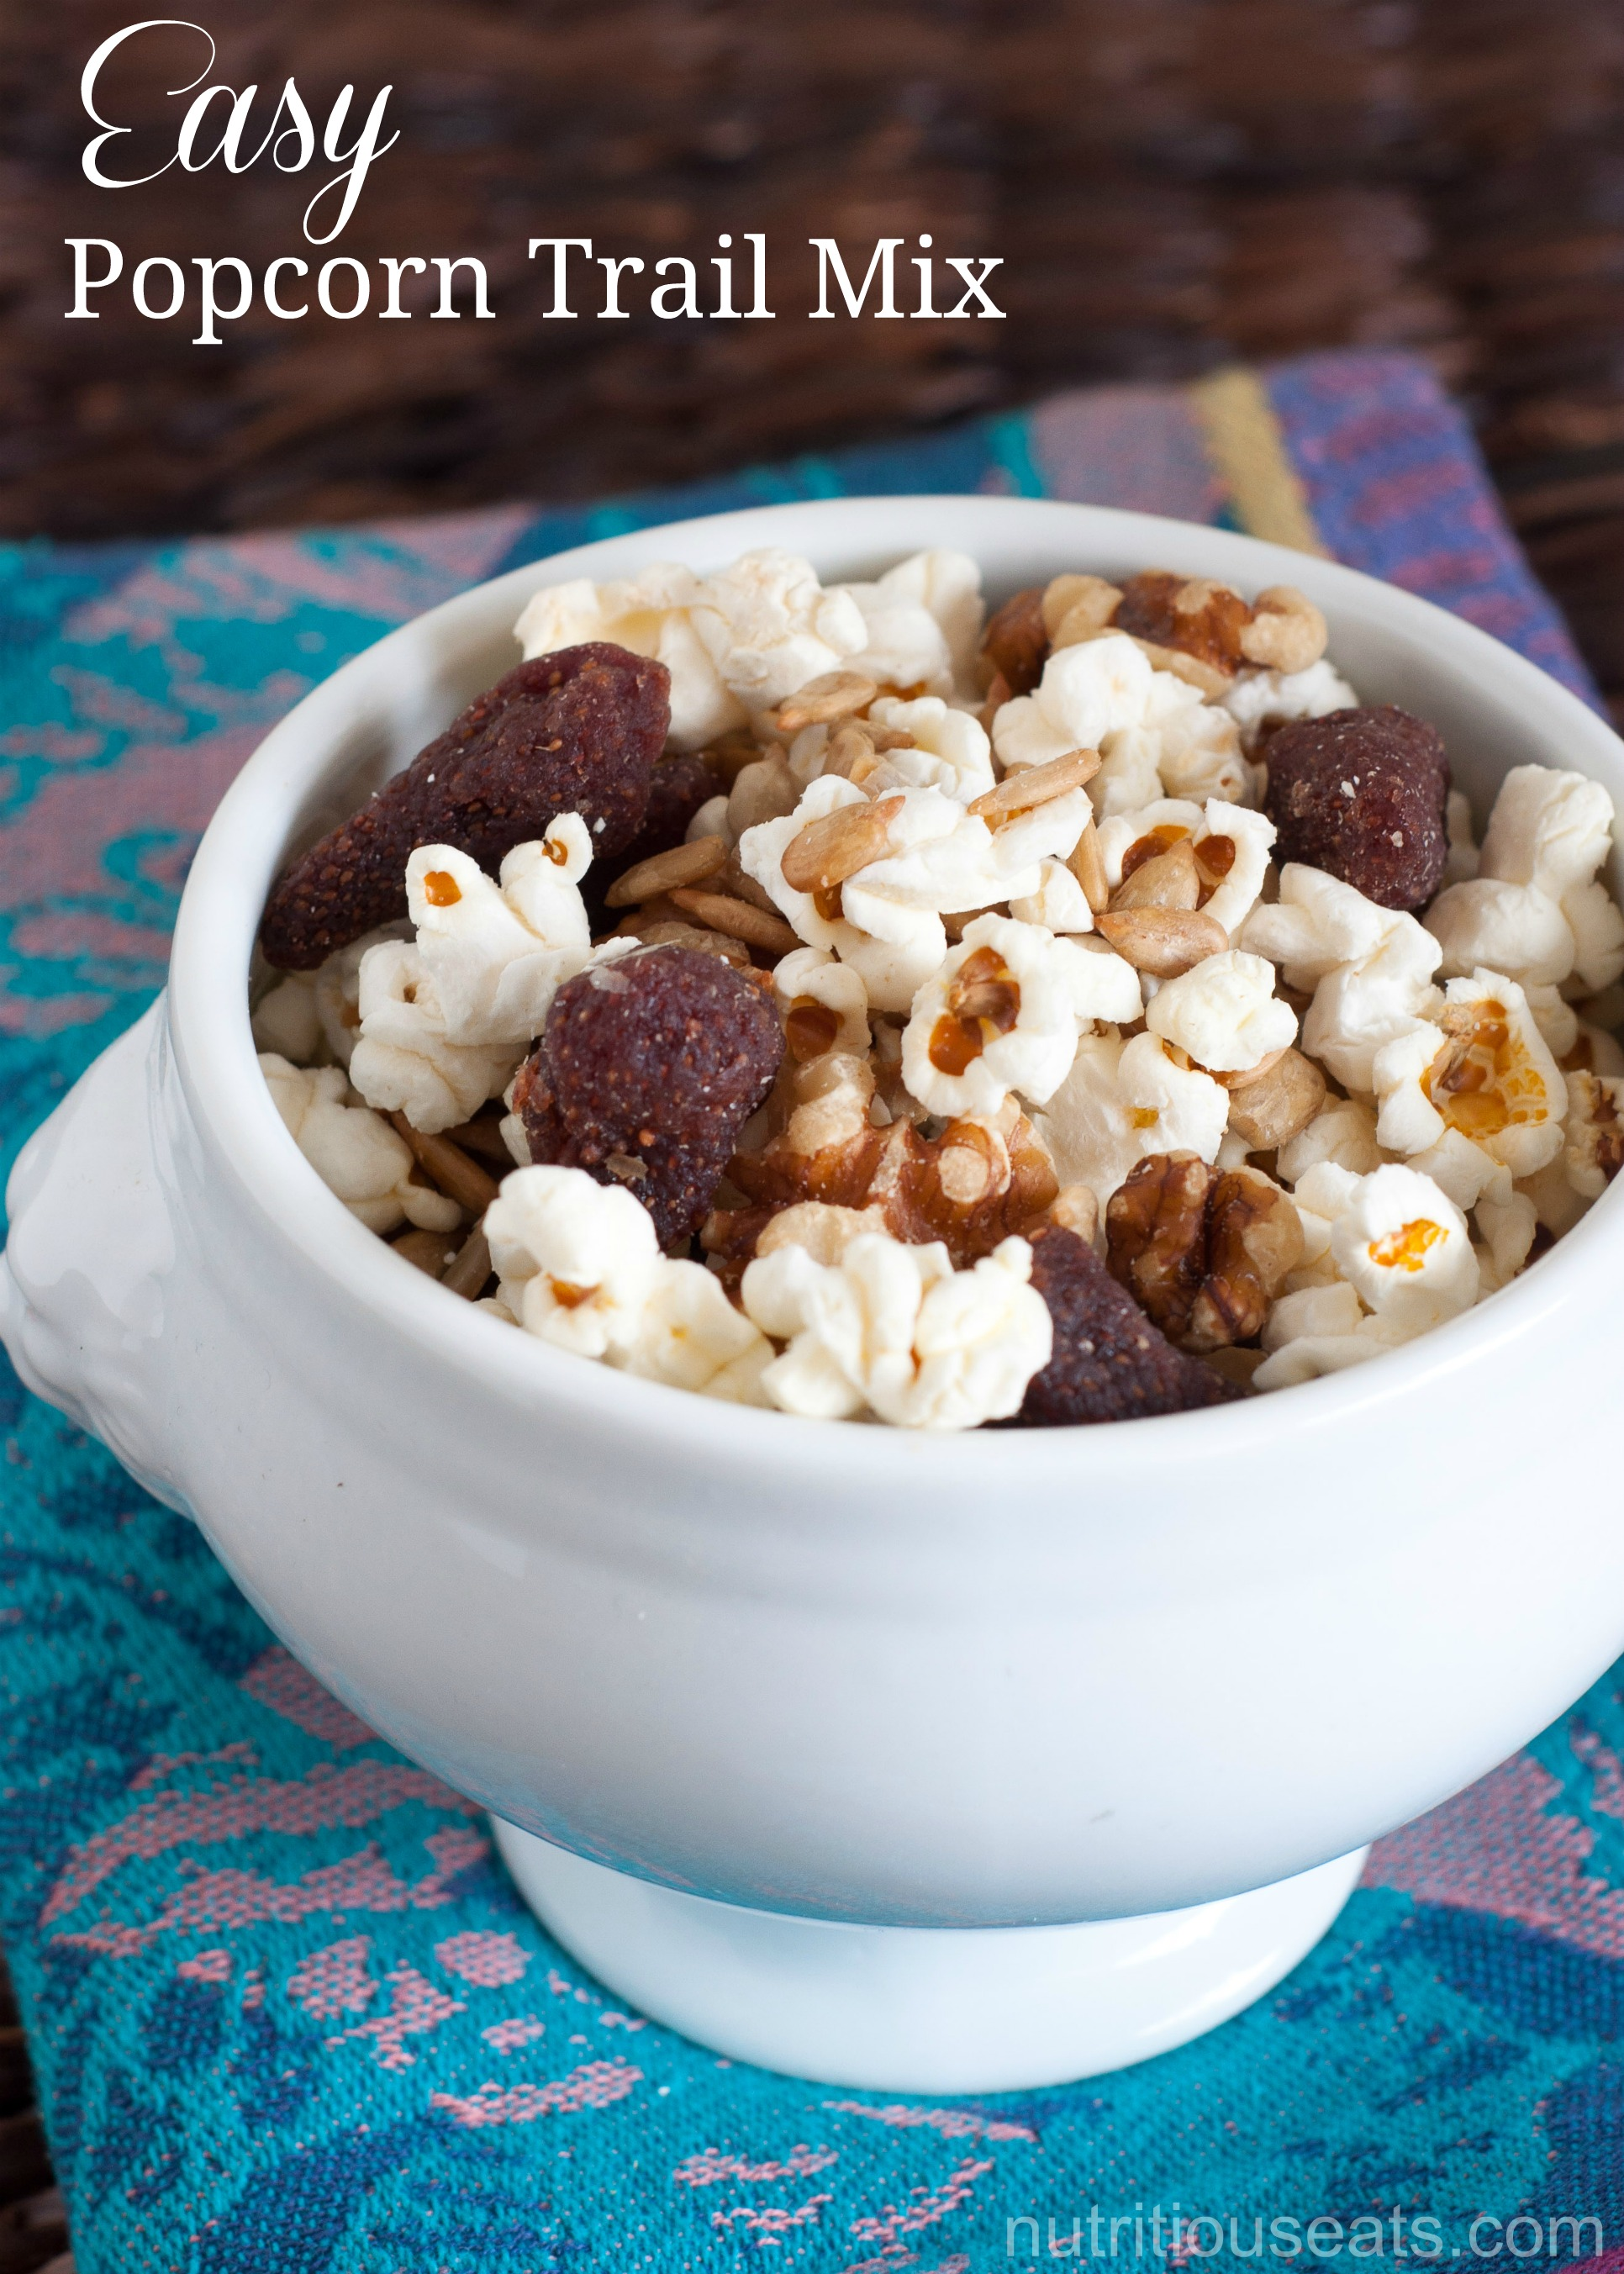 Easy Popcorn Trail Mix